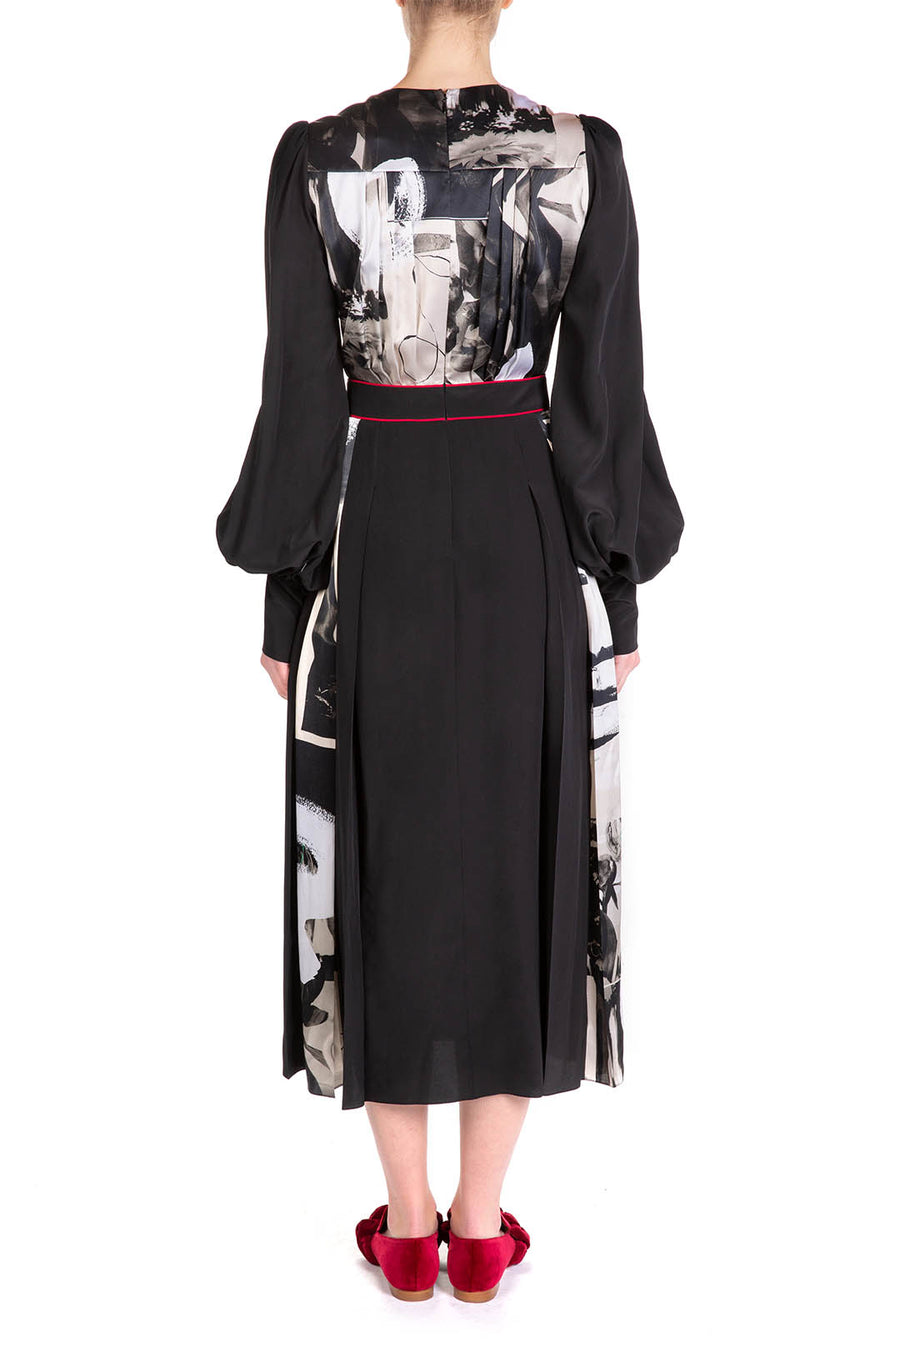 TERUKO DRESS Black & Mono Print